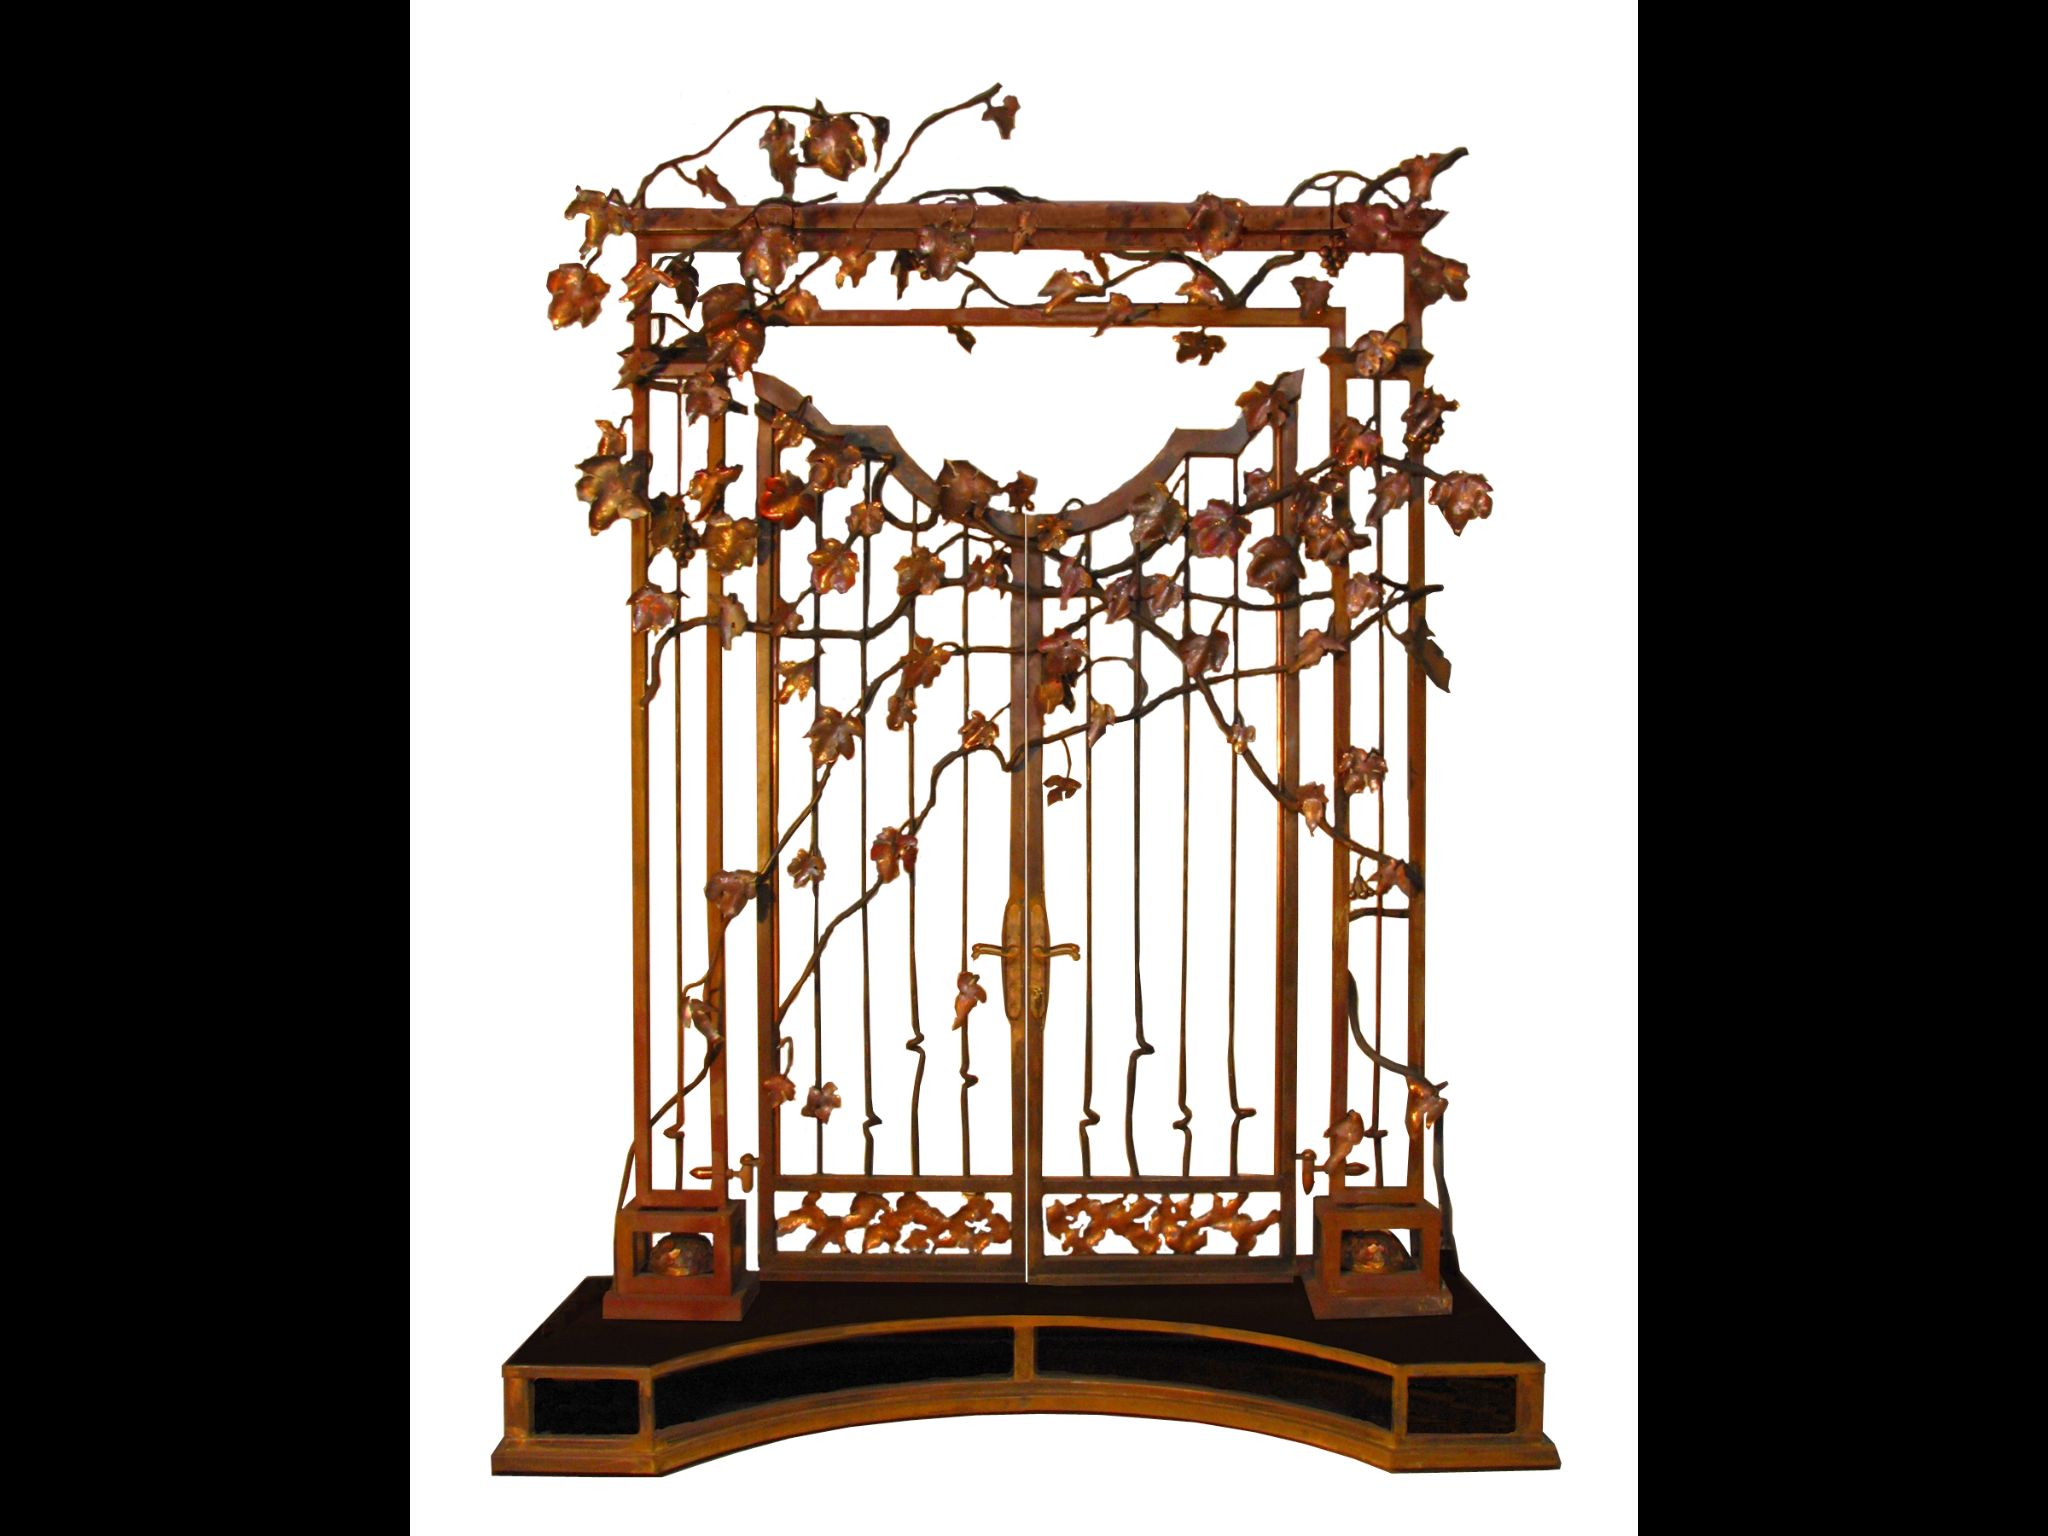 Rod iron gate design with copper leaves